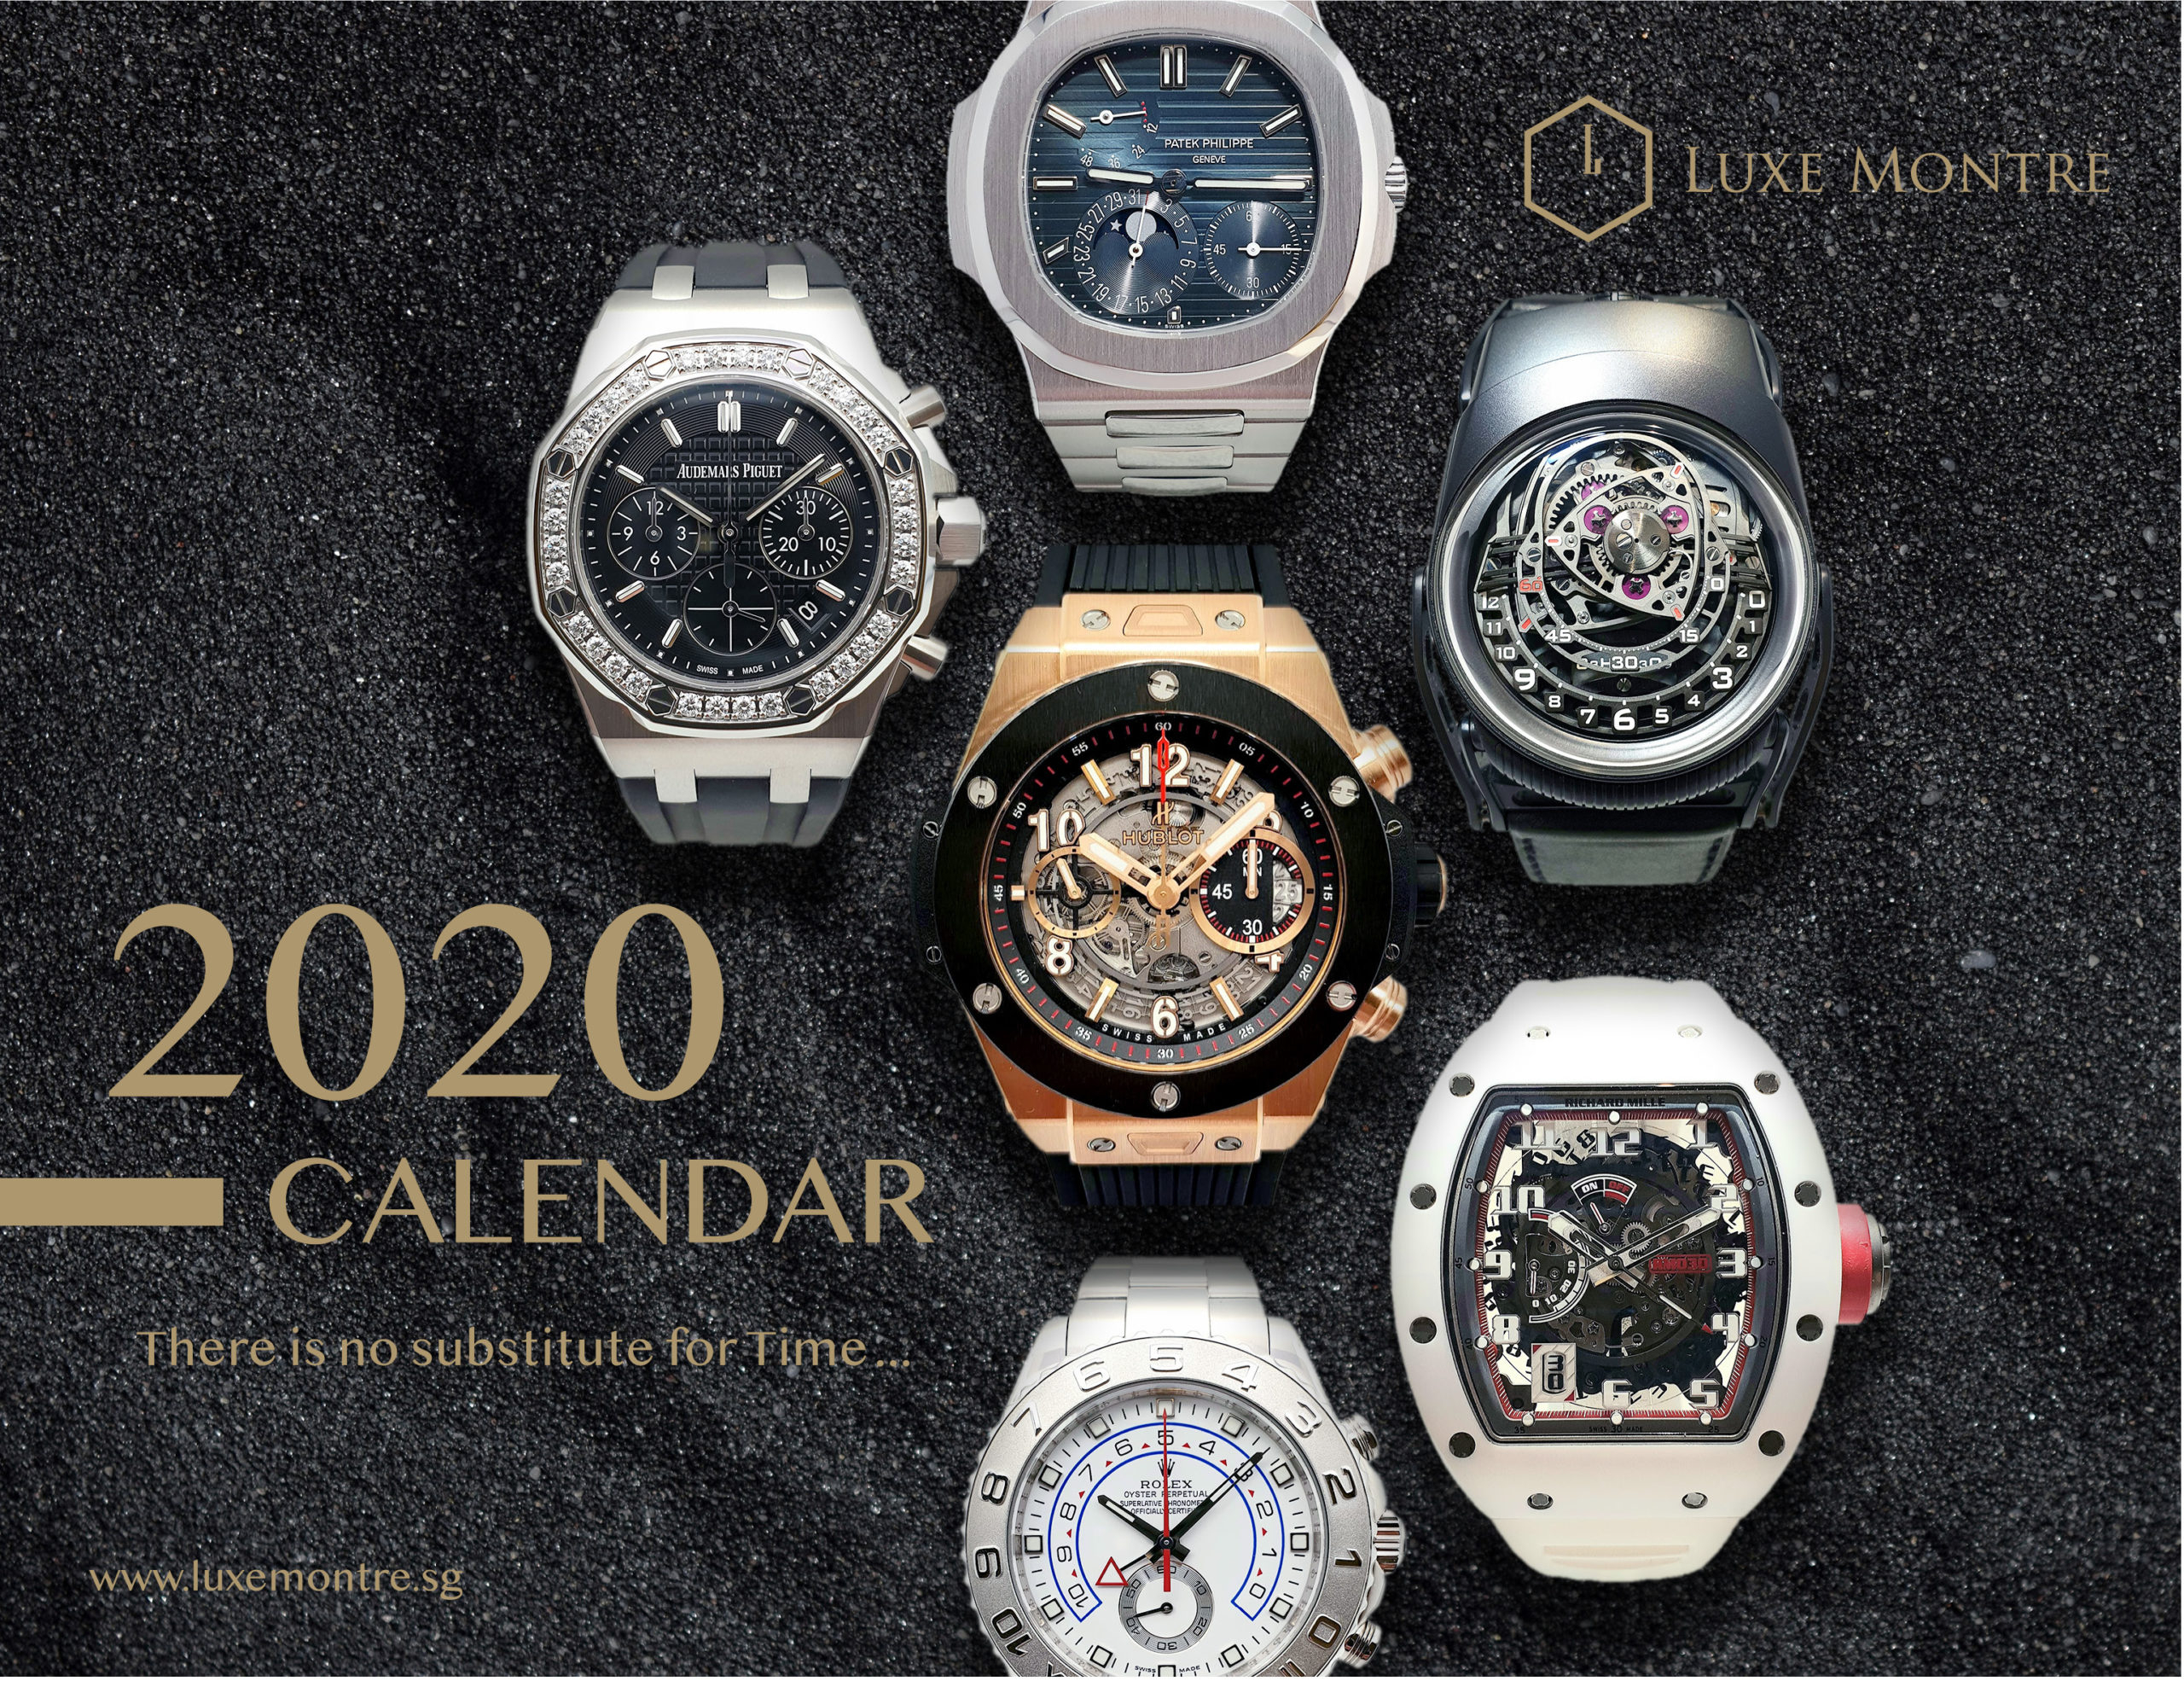 2020 Digital Calendar Download - Luxe Montre Singapore